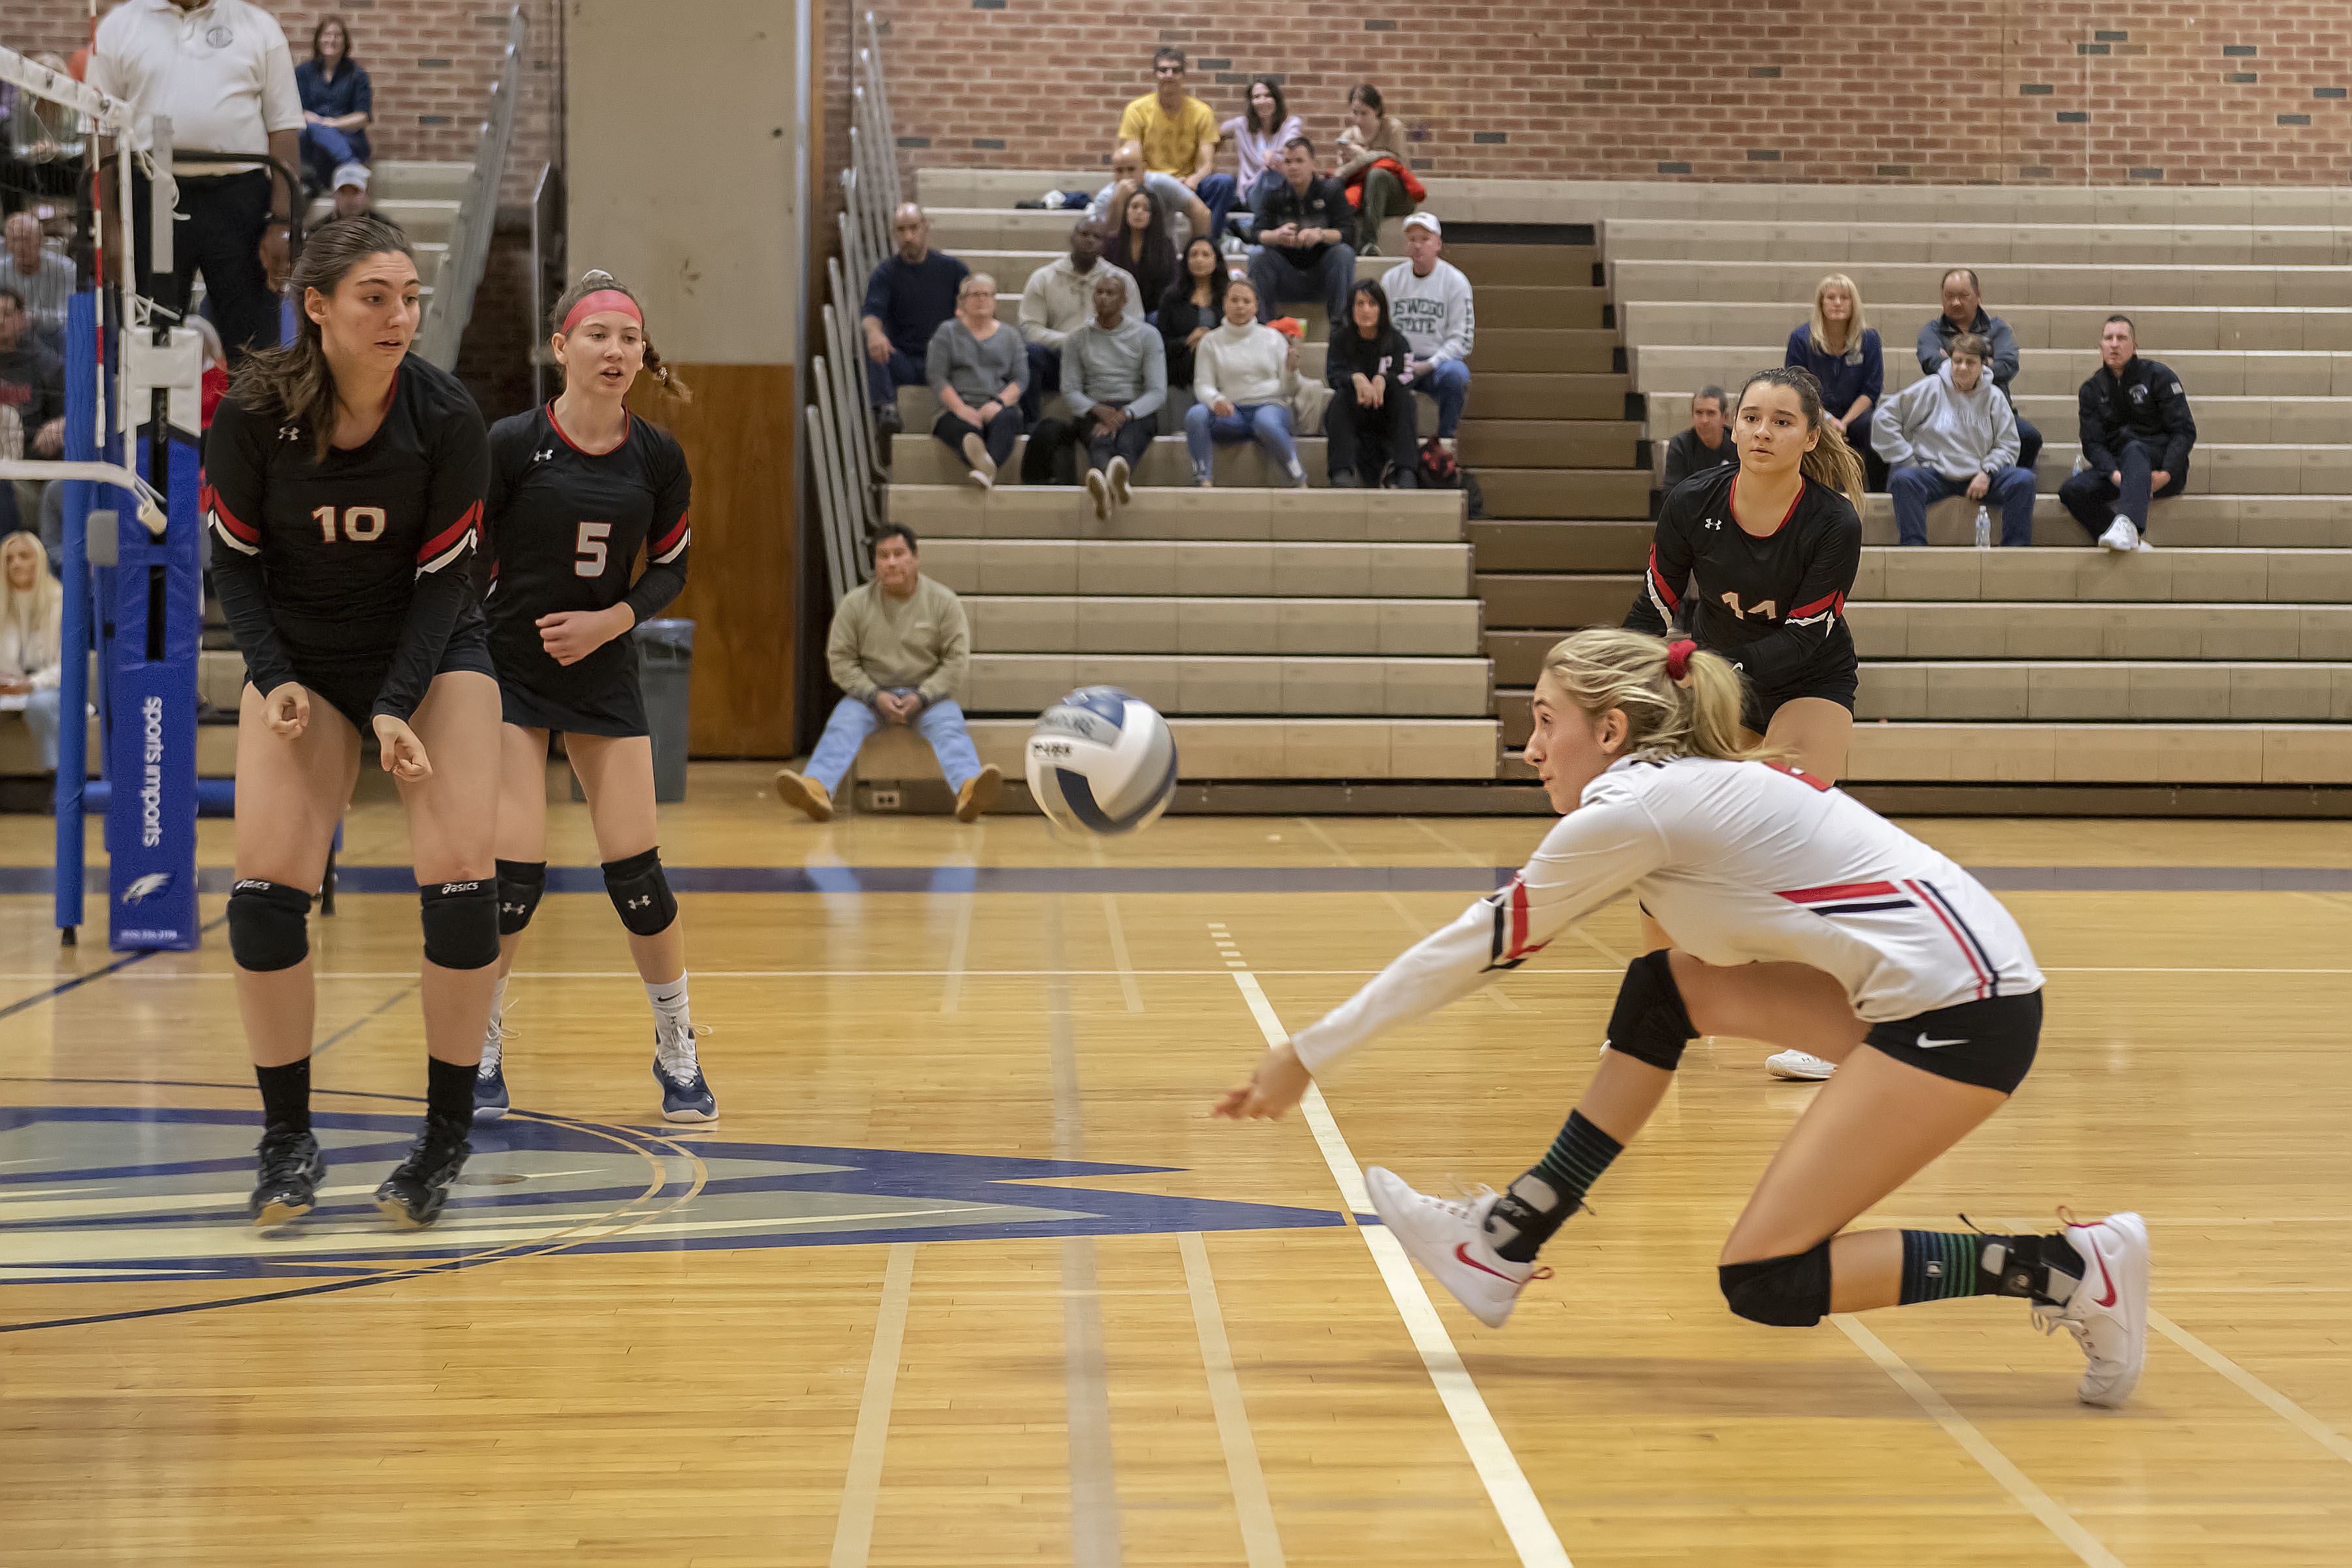 Pierson's Olivia Cassone reaches for a return as the Lady Whalers battled the Oyster Bay Lady Baymen for the Long Island Class C Volleyball Championship at Hauppauge High School on Saturday night.